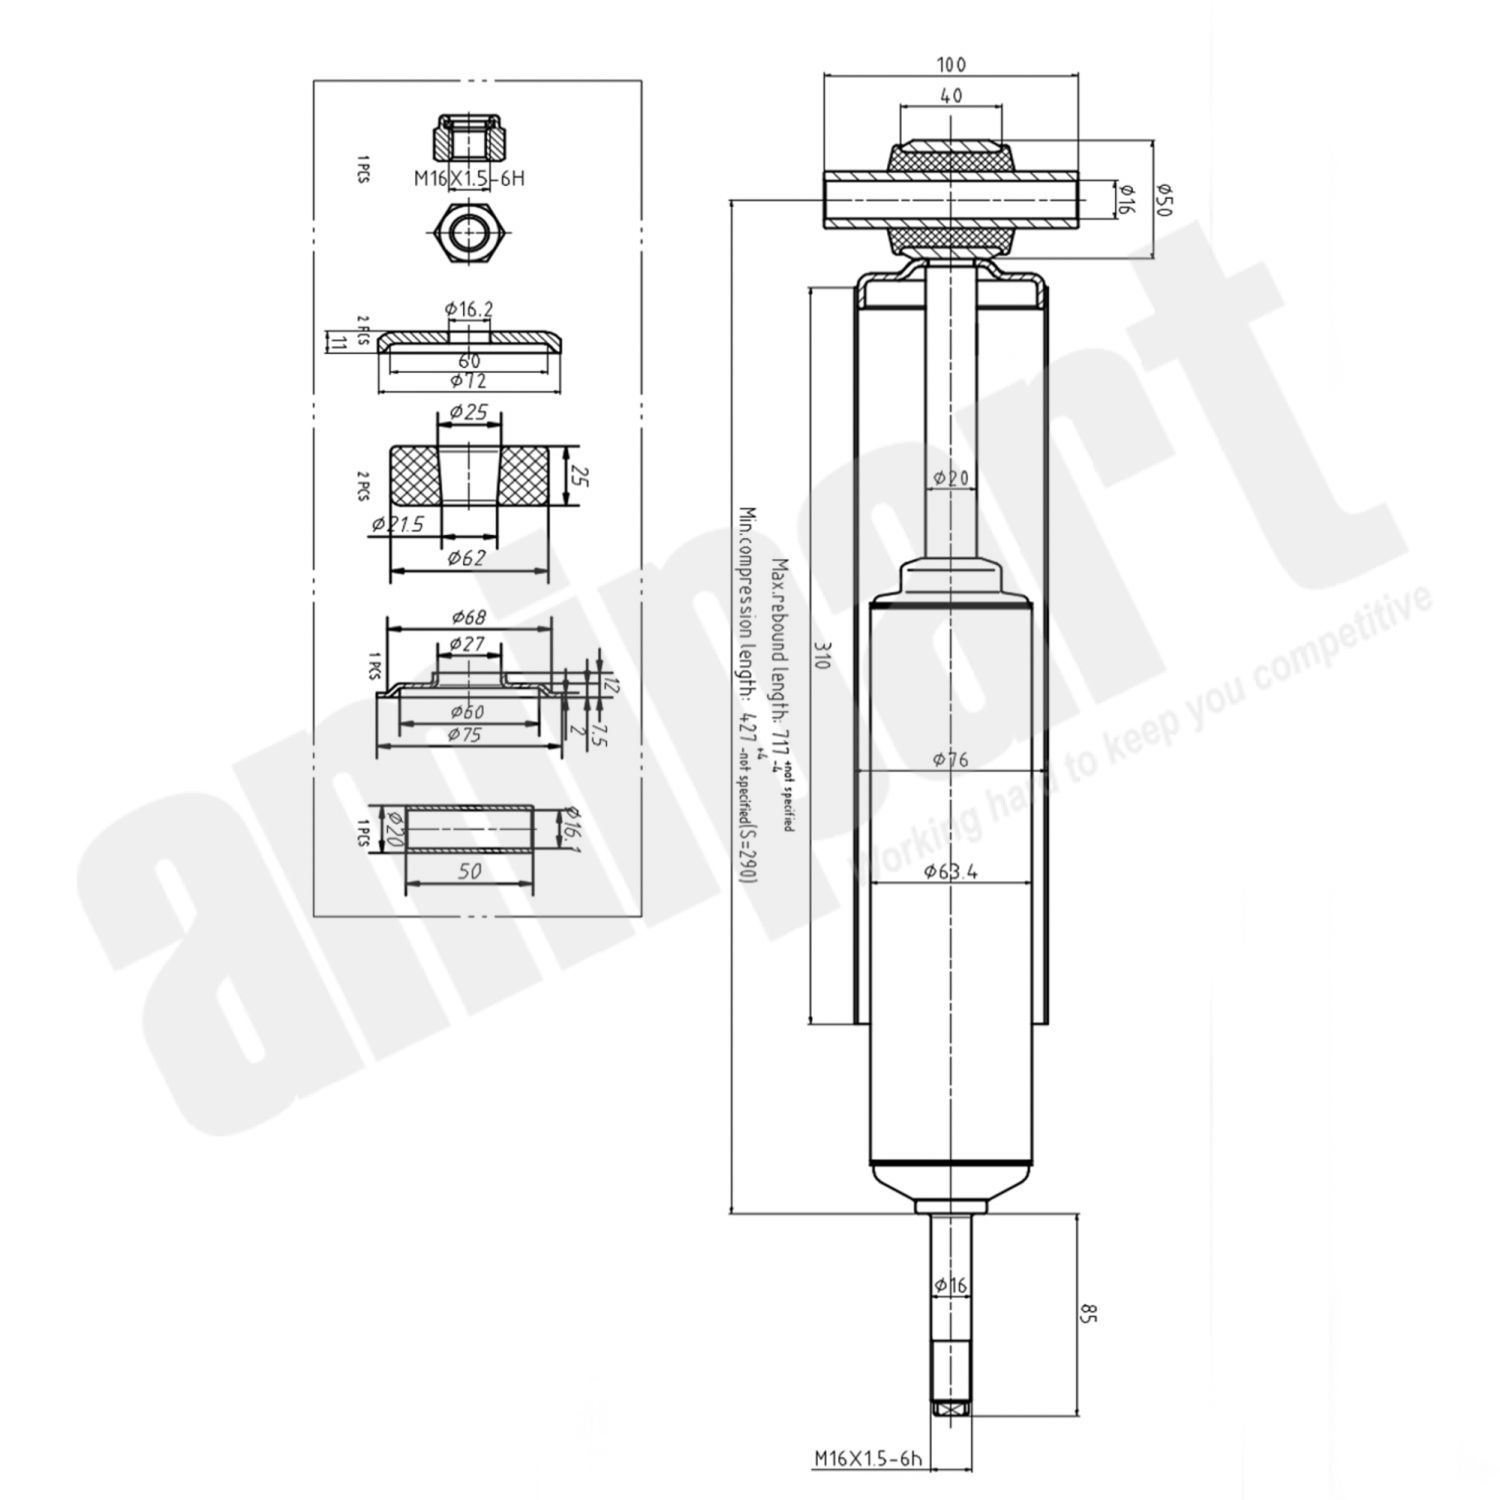 Amipart Shock Absorber Am